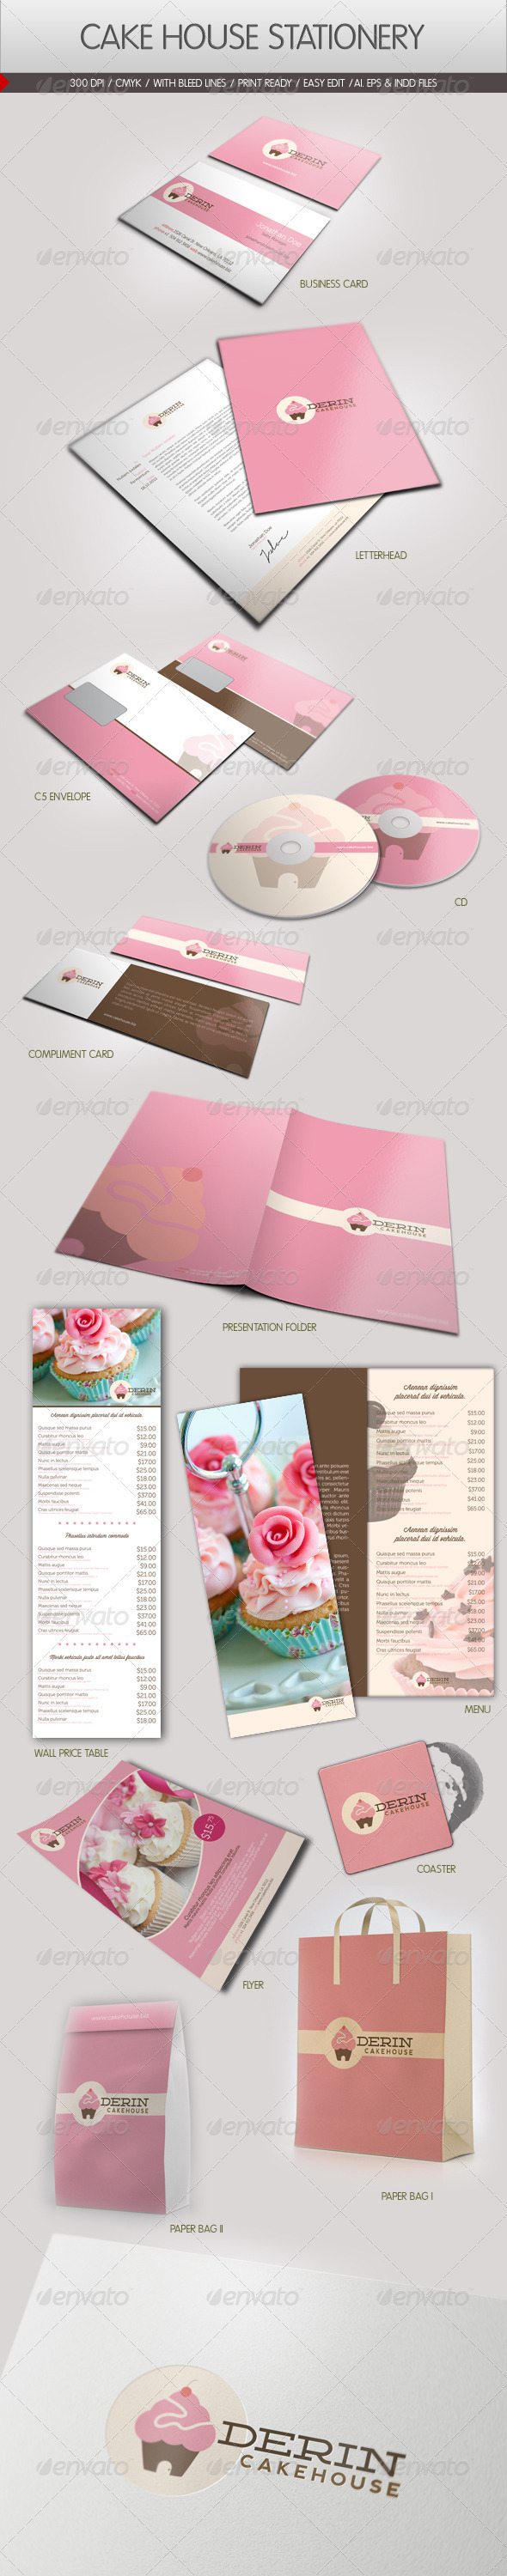 Cake House Corporate Identity - Stationery Print Templates